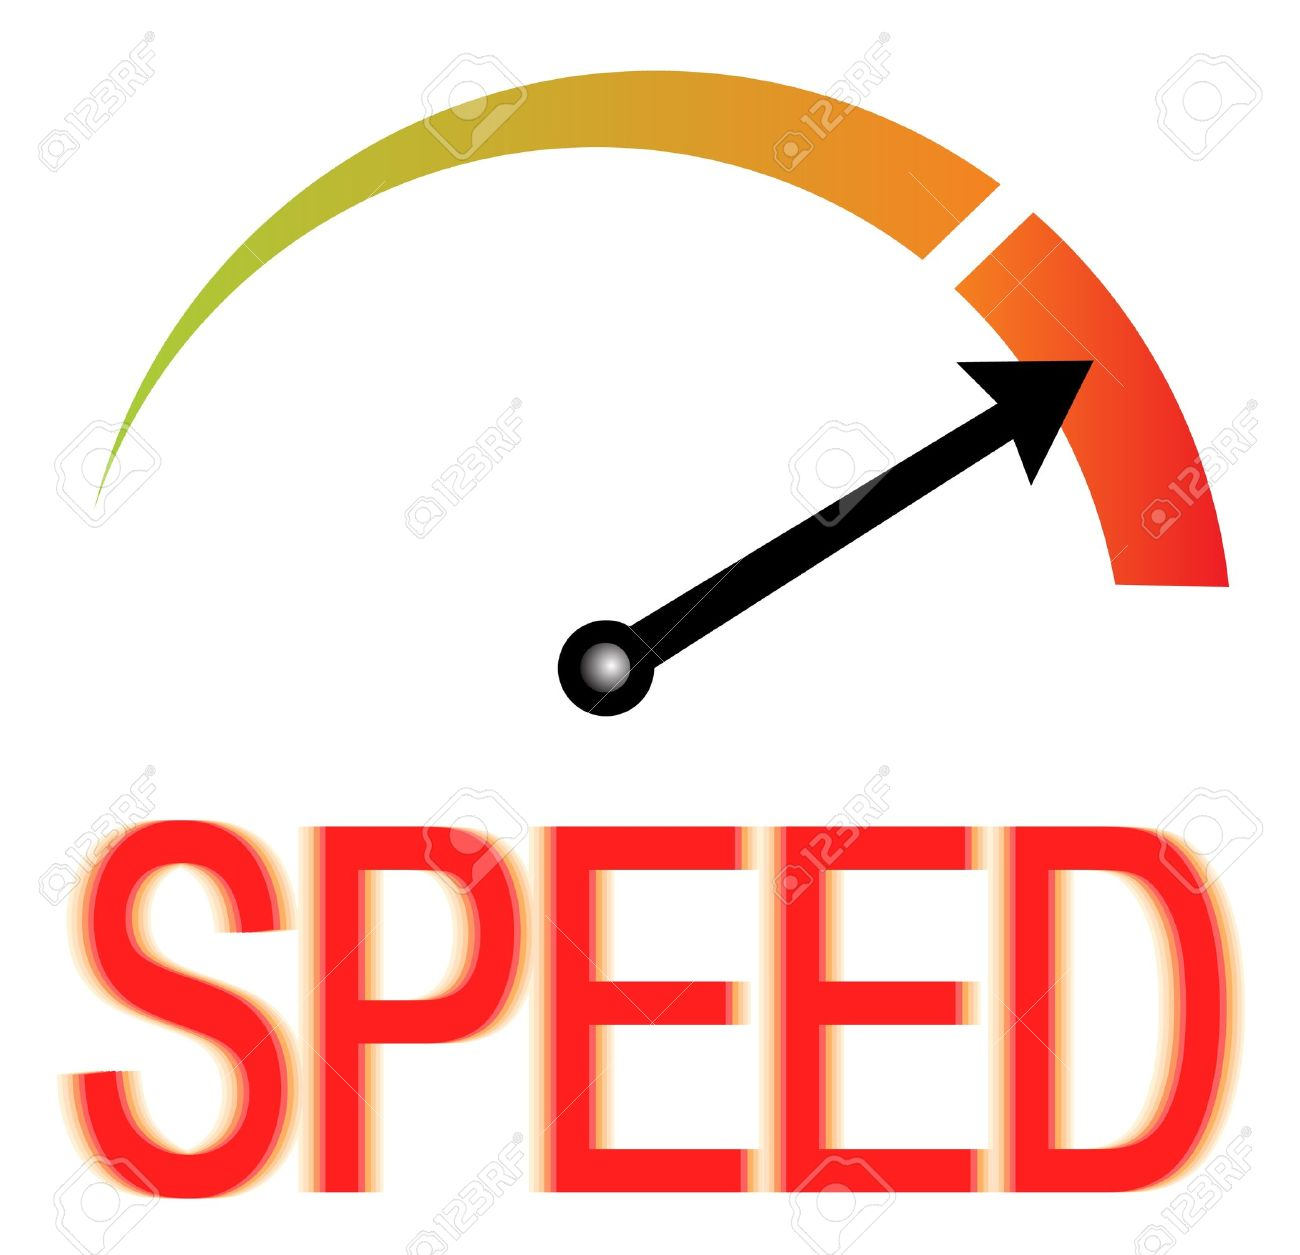 Clipart speed.